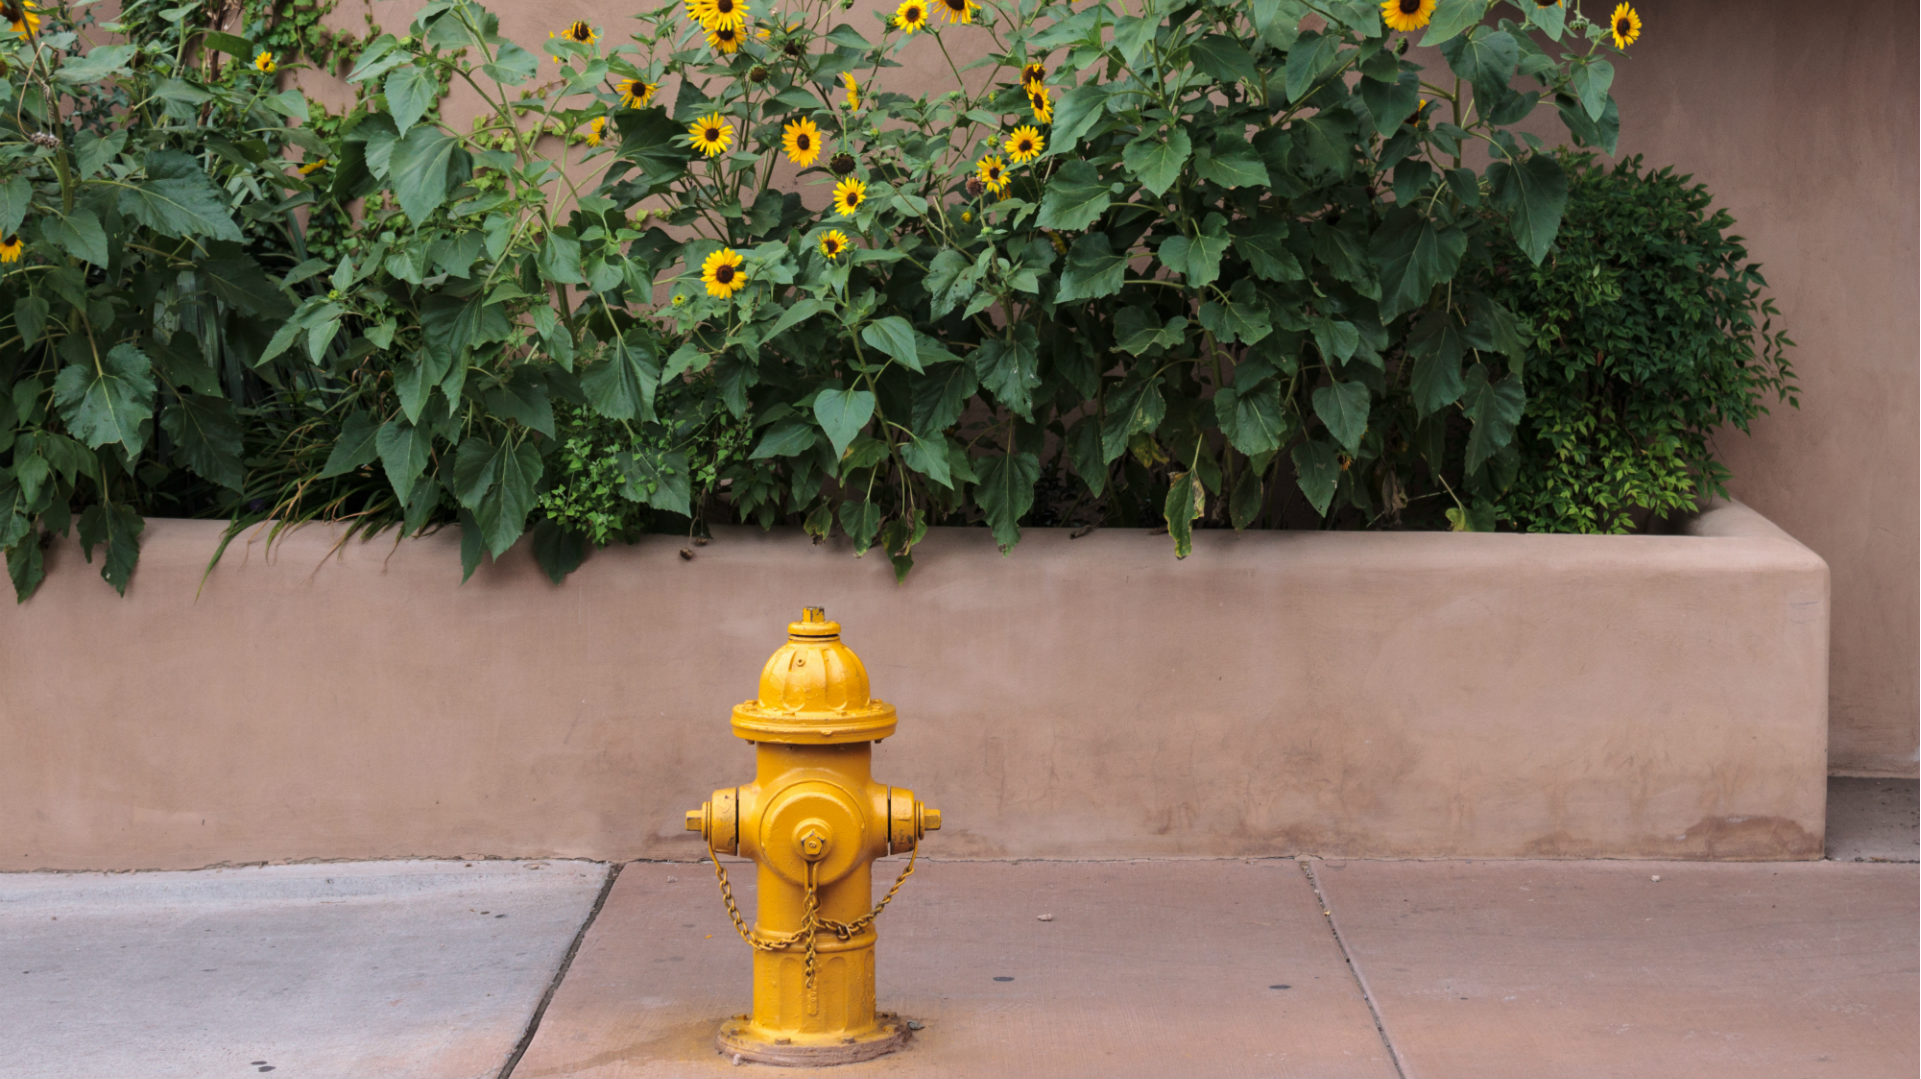 yellow water hydrant with sunflowers behind